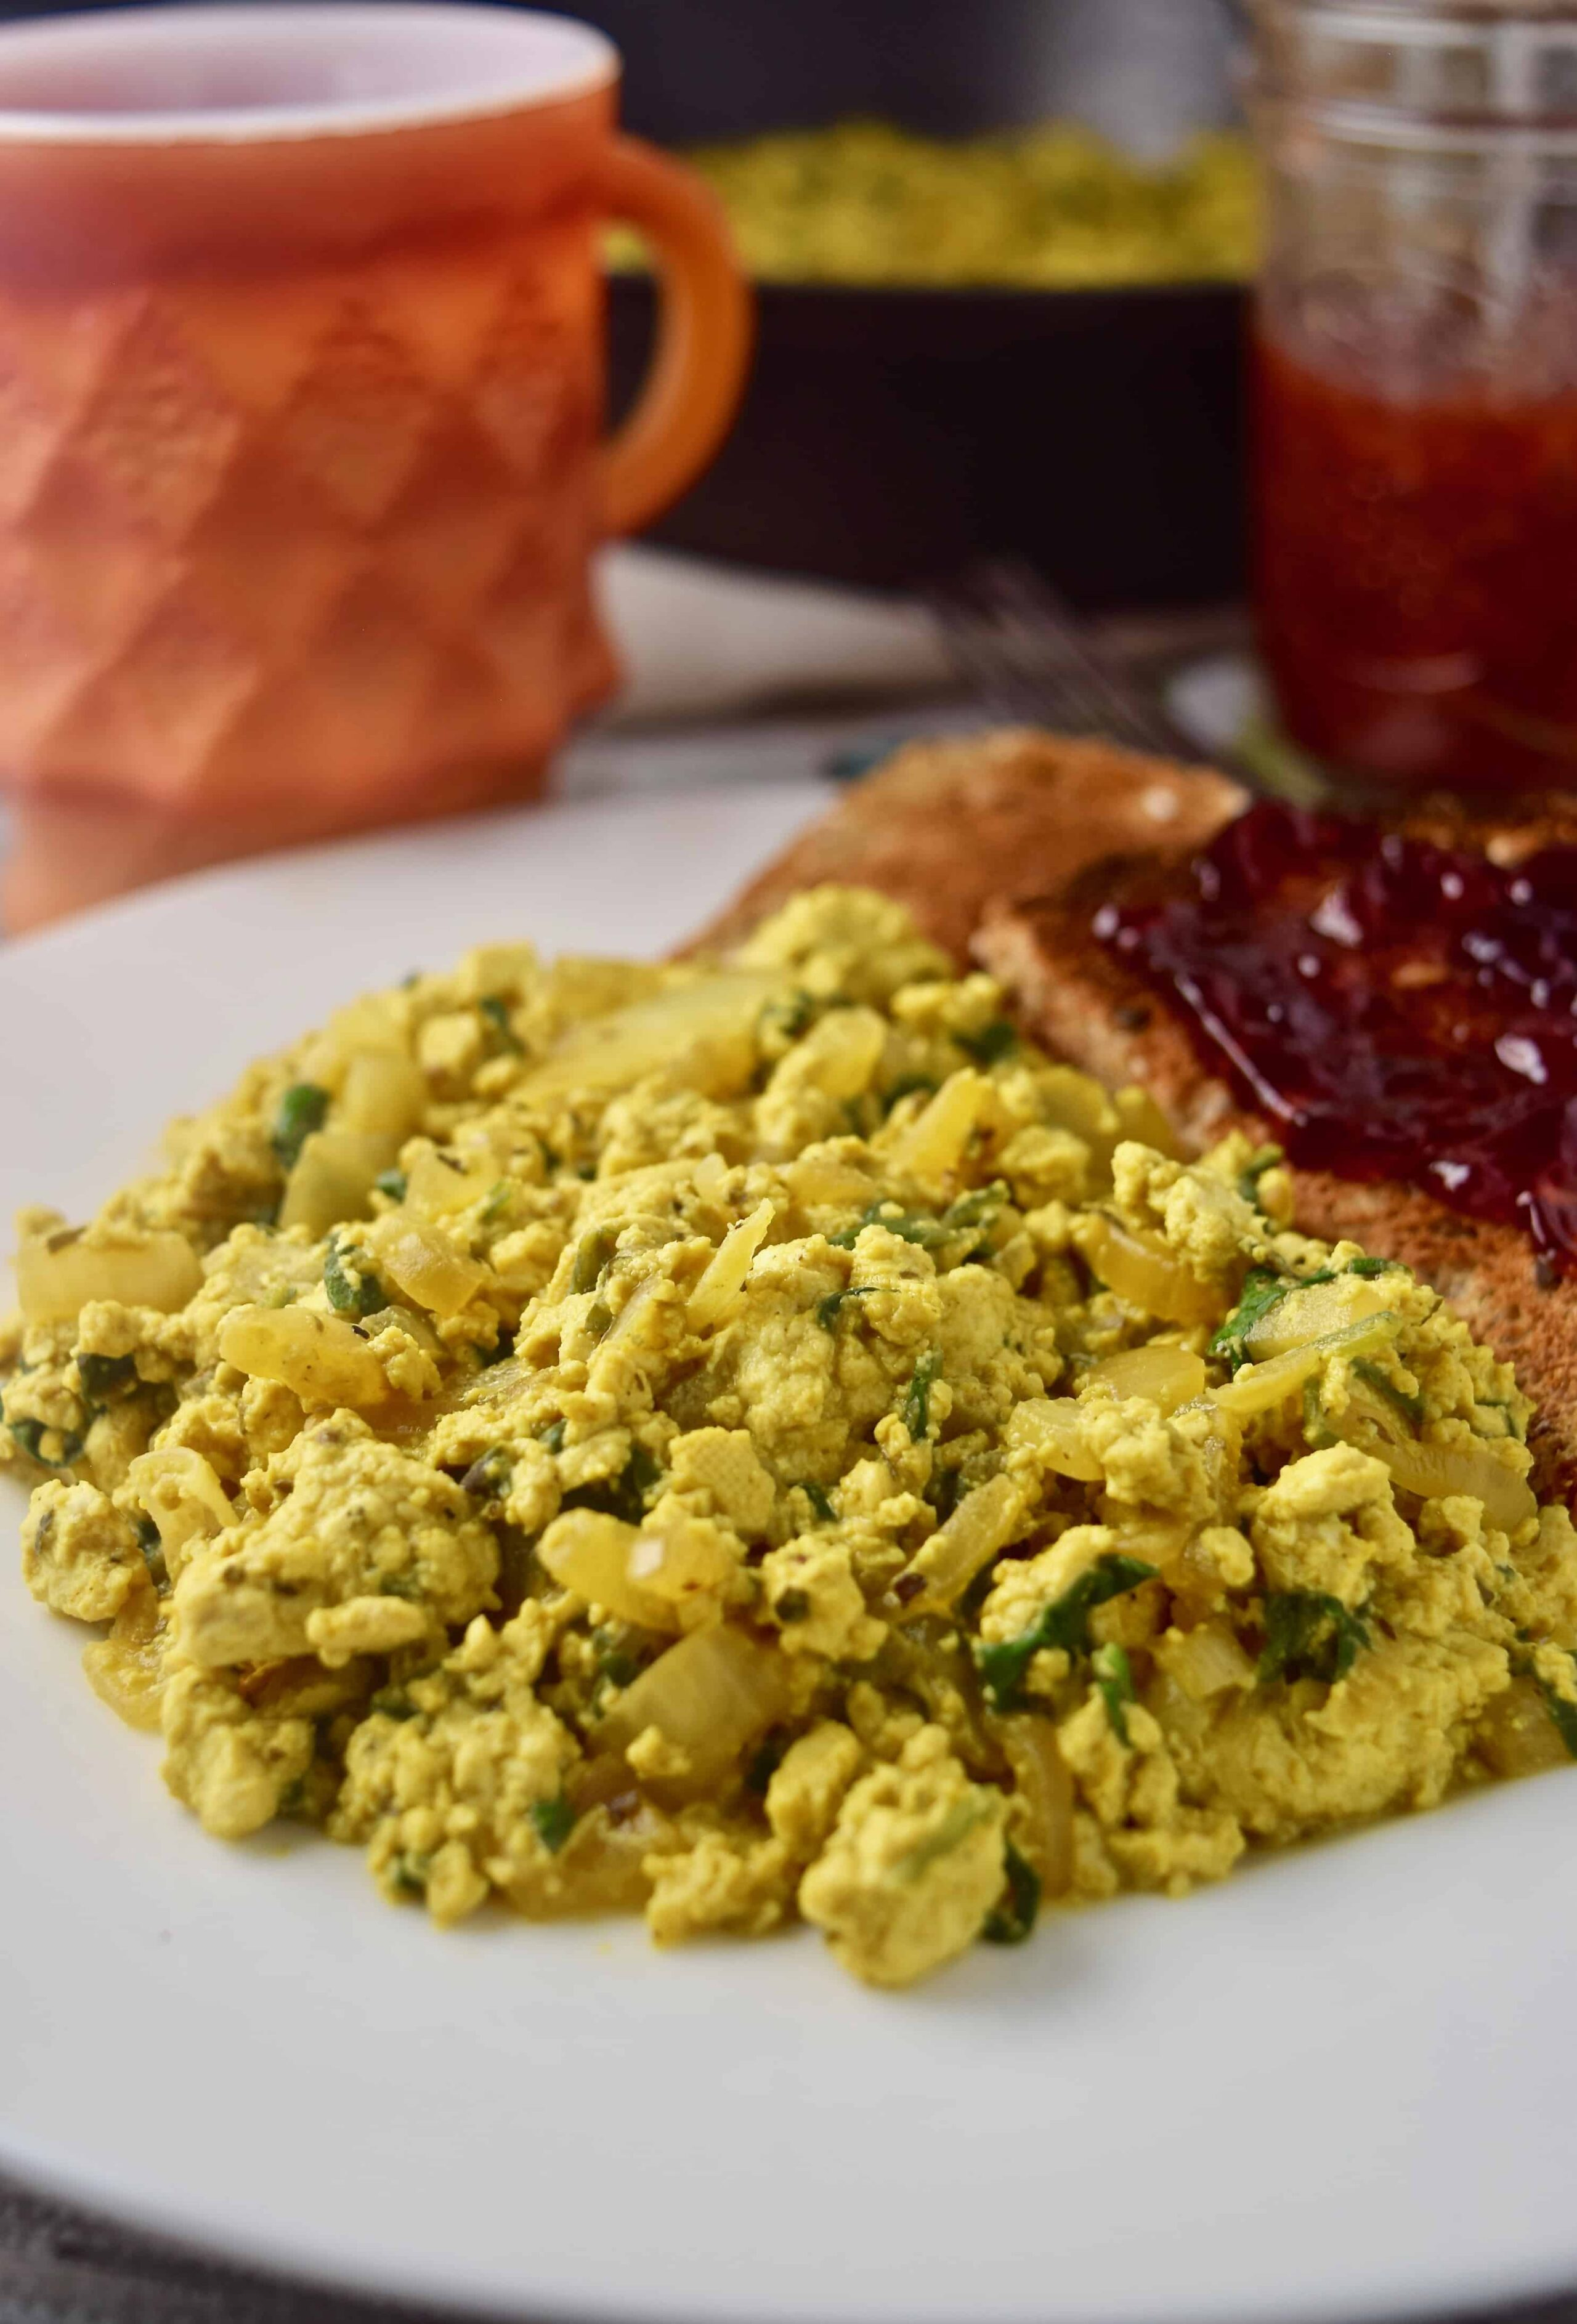 Tofu scramble on plate with toast and cup of coffee.